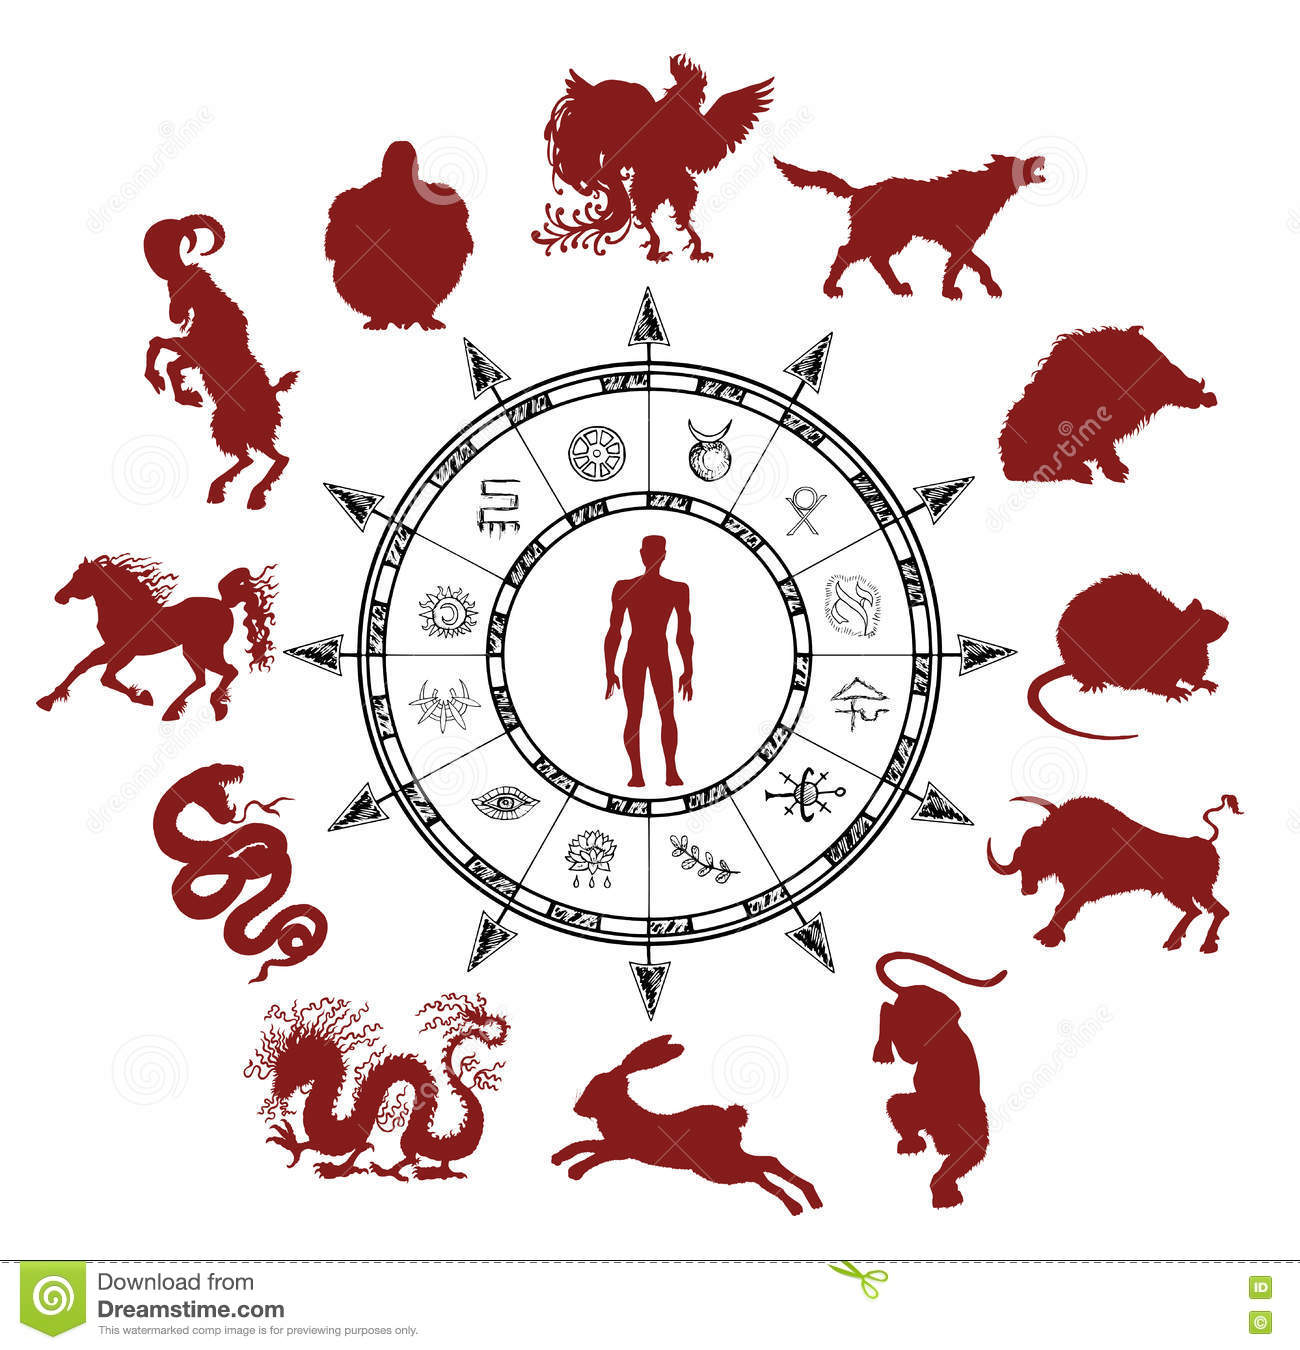 Astrology Chart With Silhouettes Of Chinese Zodiac Animals And Mystic Symbols